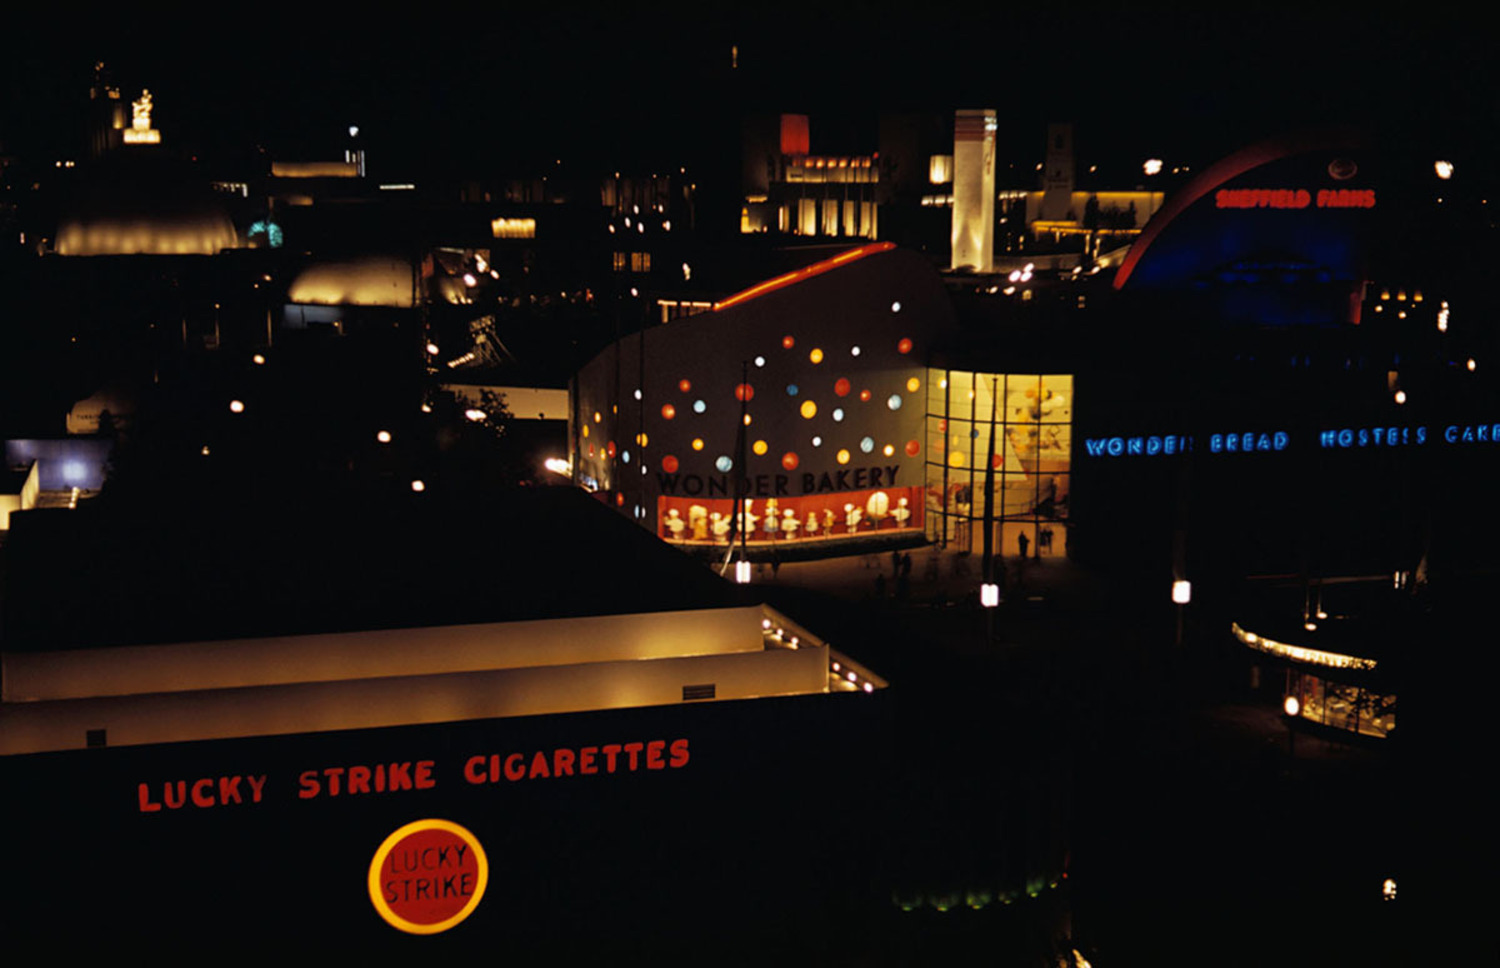 The Lucky Strike Cigarettes and Wonder Bread Bakery buildings are shown illuminated at night at the 1939 New York World's Fair.